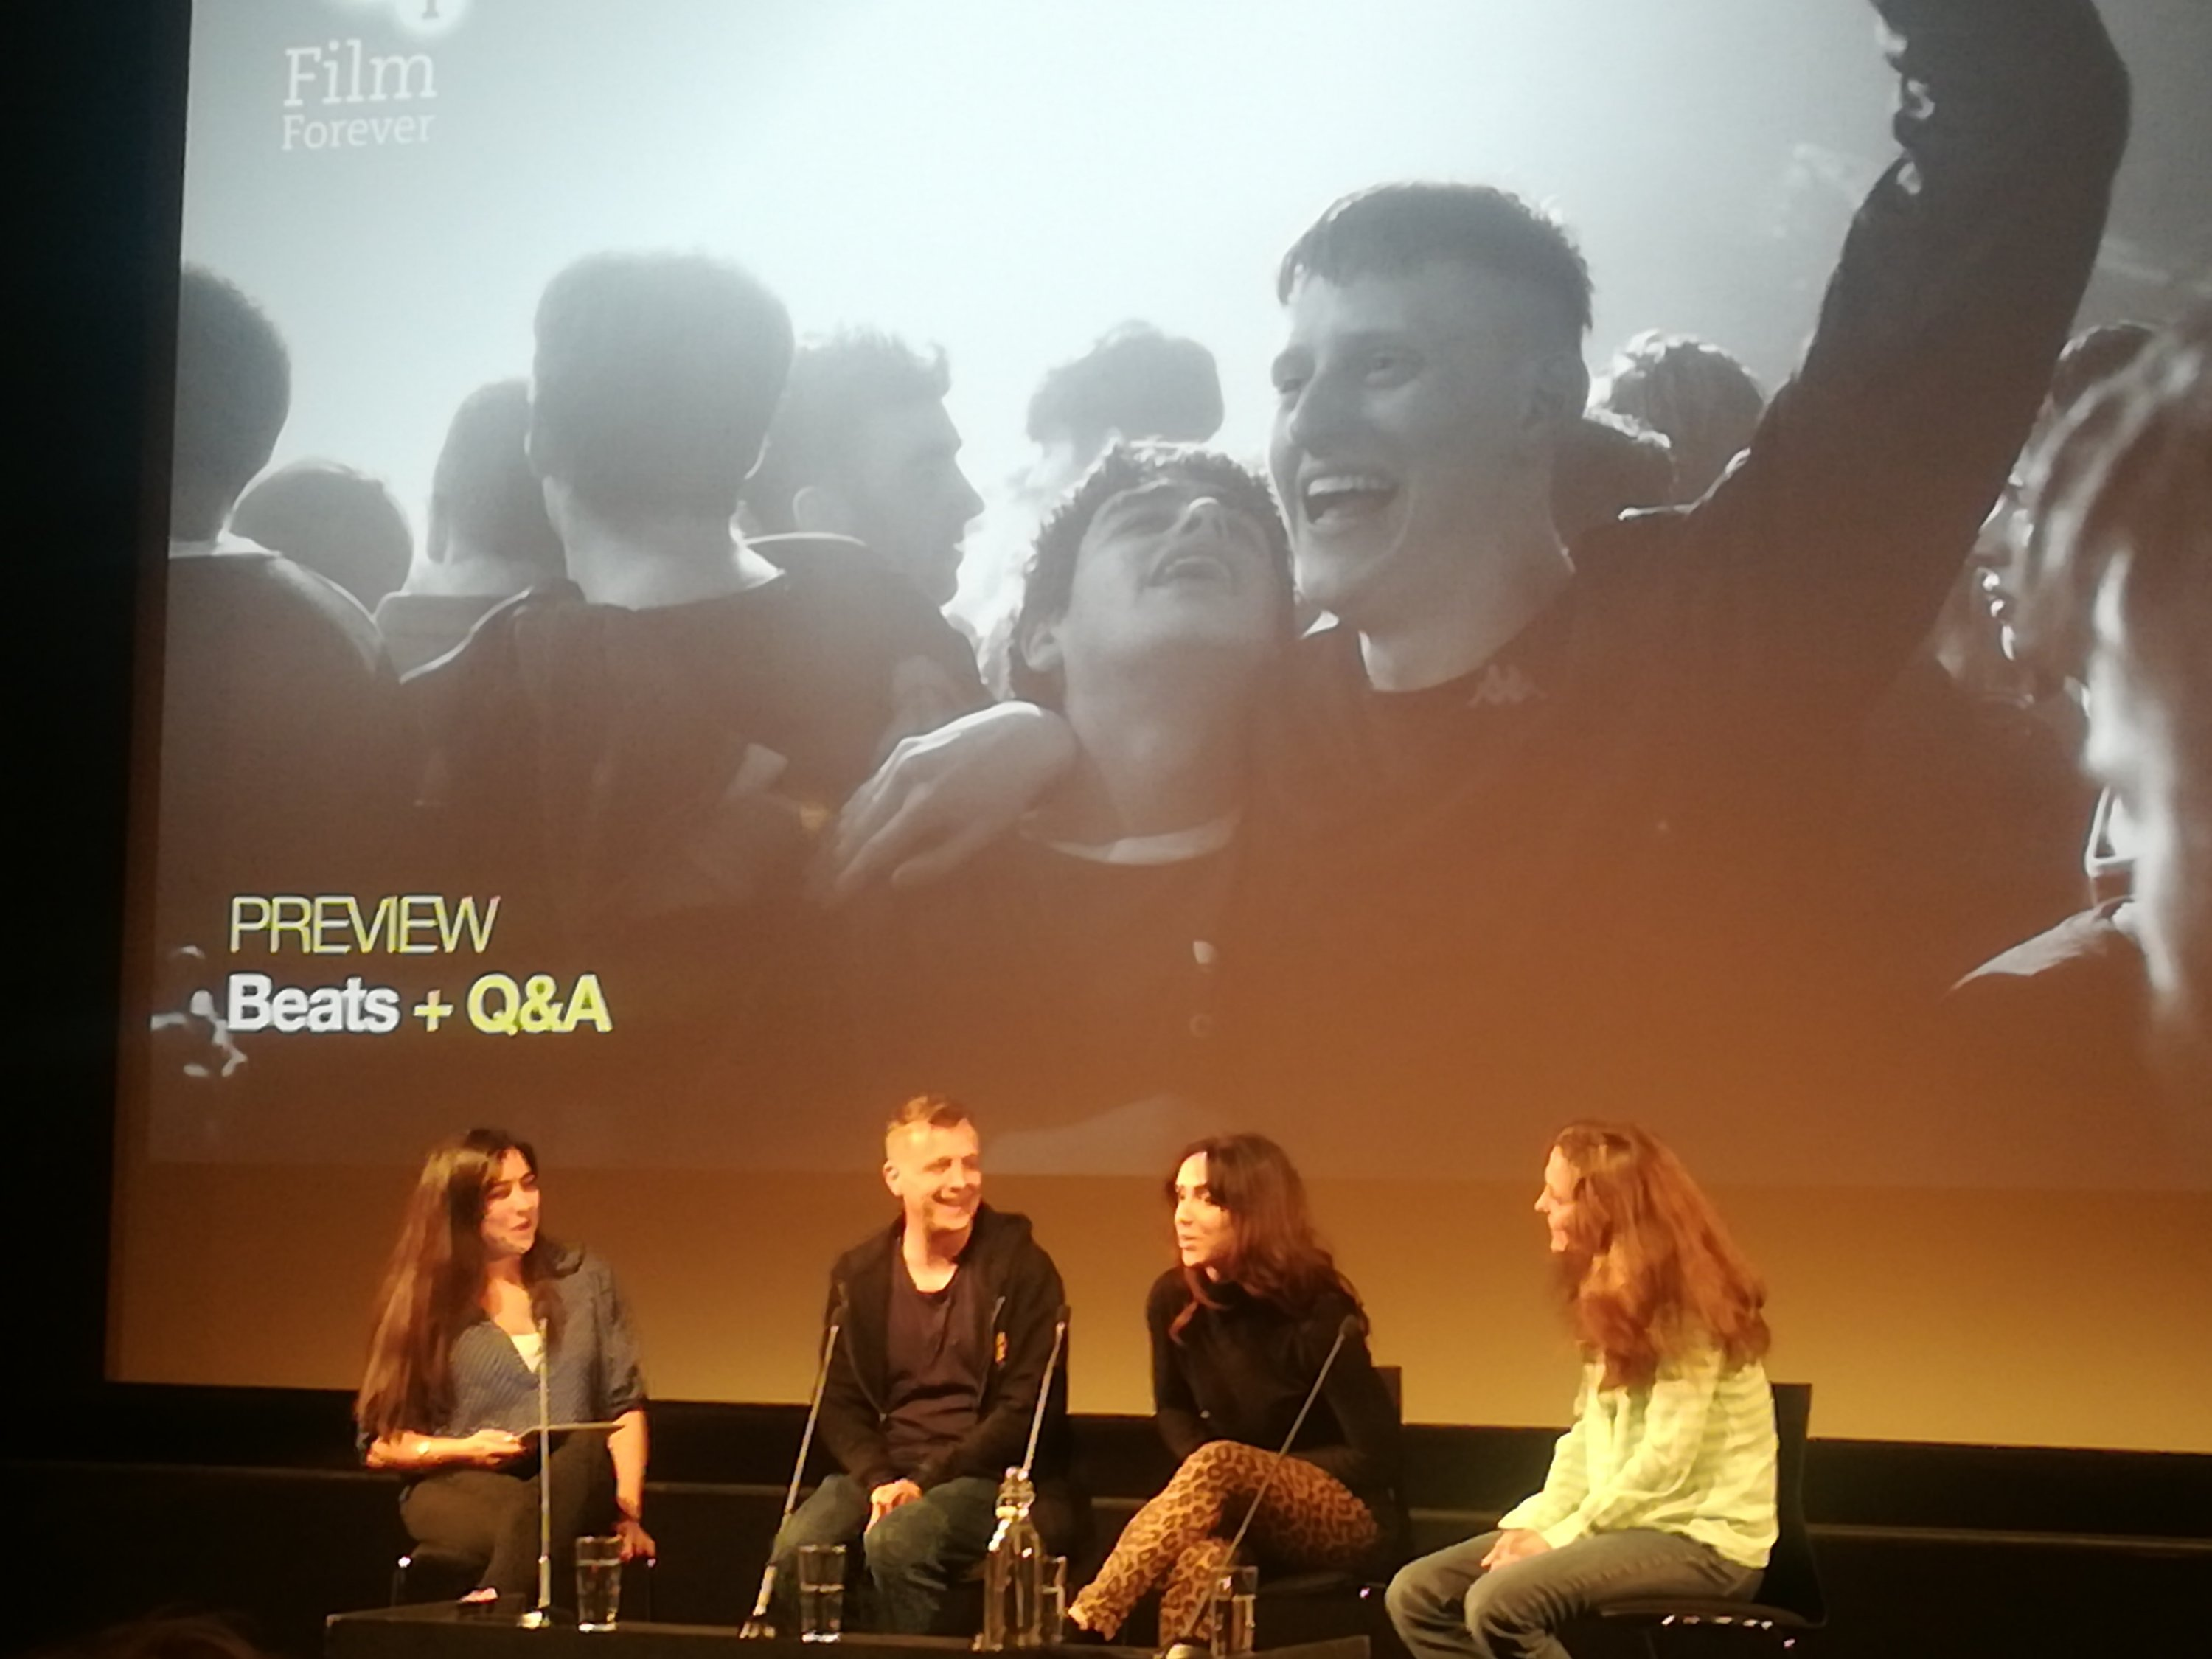 Co-writer and director, Brian Welsh, Amy Manson, who plays Cat (leopard skin jeans) and producer, Camilla Bray, at the BFI preview of Beats - Monday, 13th May 2019